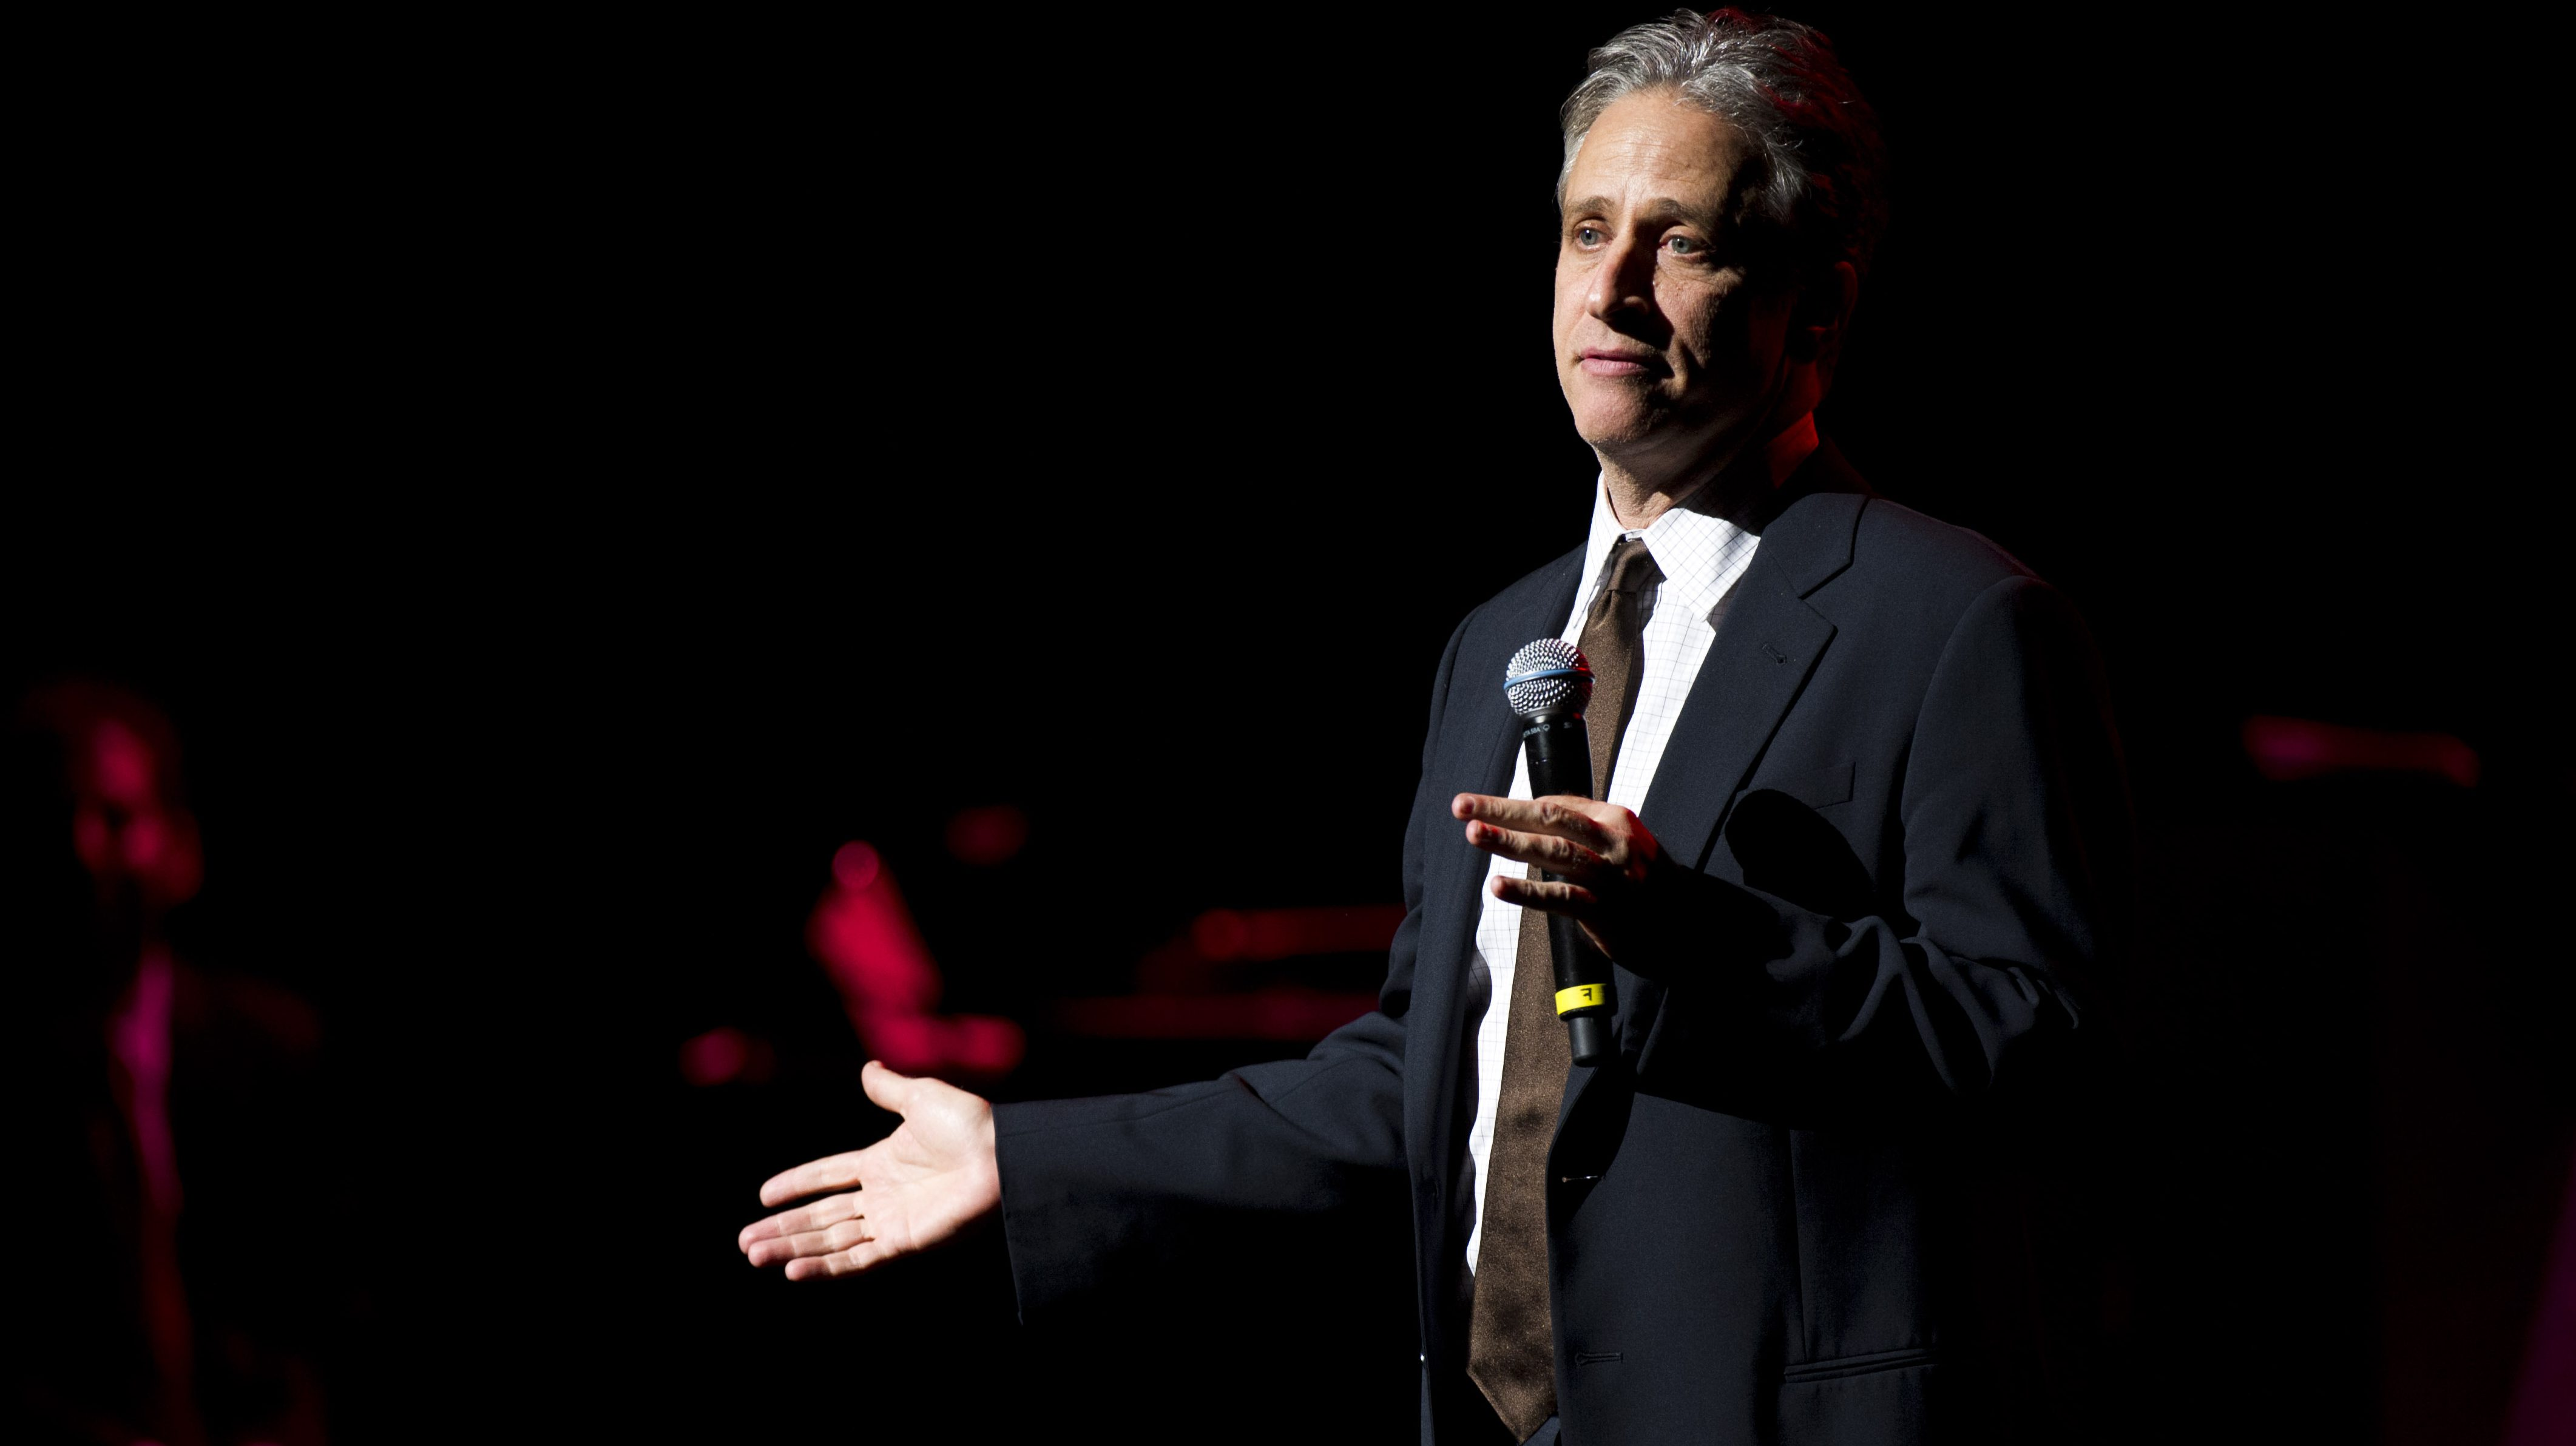 Jon Stewart performs at the 6th Annual Stand Up For Heroes benefit concert for injured service members and veterans on Thursday, Nov. 8, 2012 in New York. (Photo by Charles Sykes/Invision/AP)